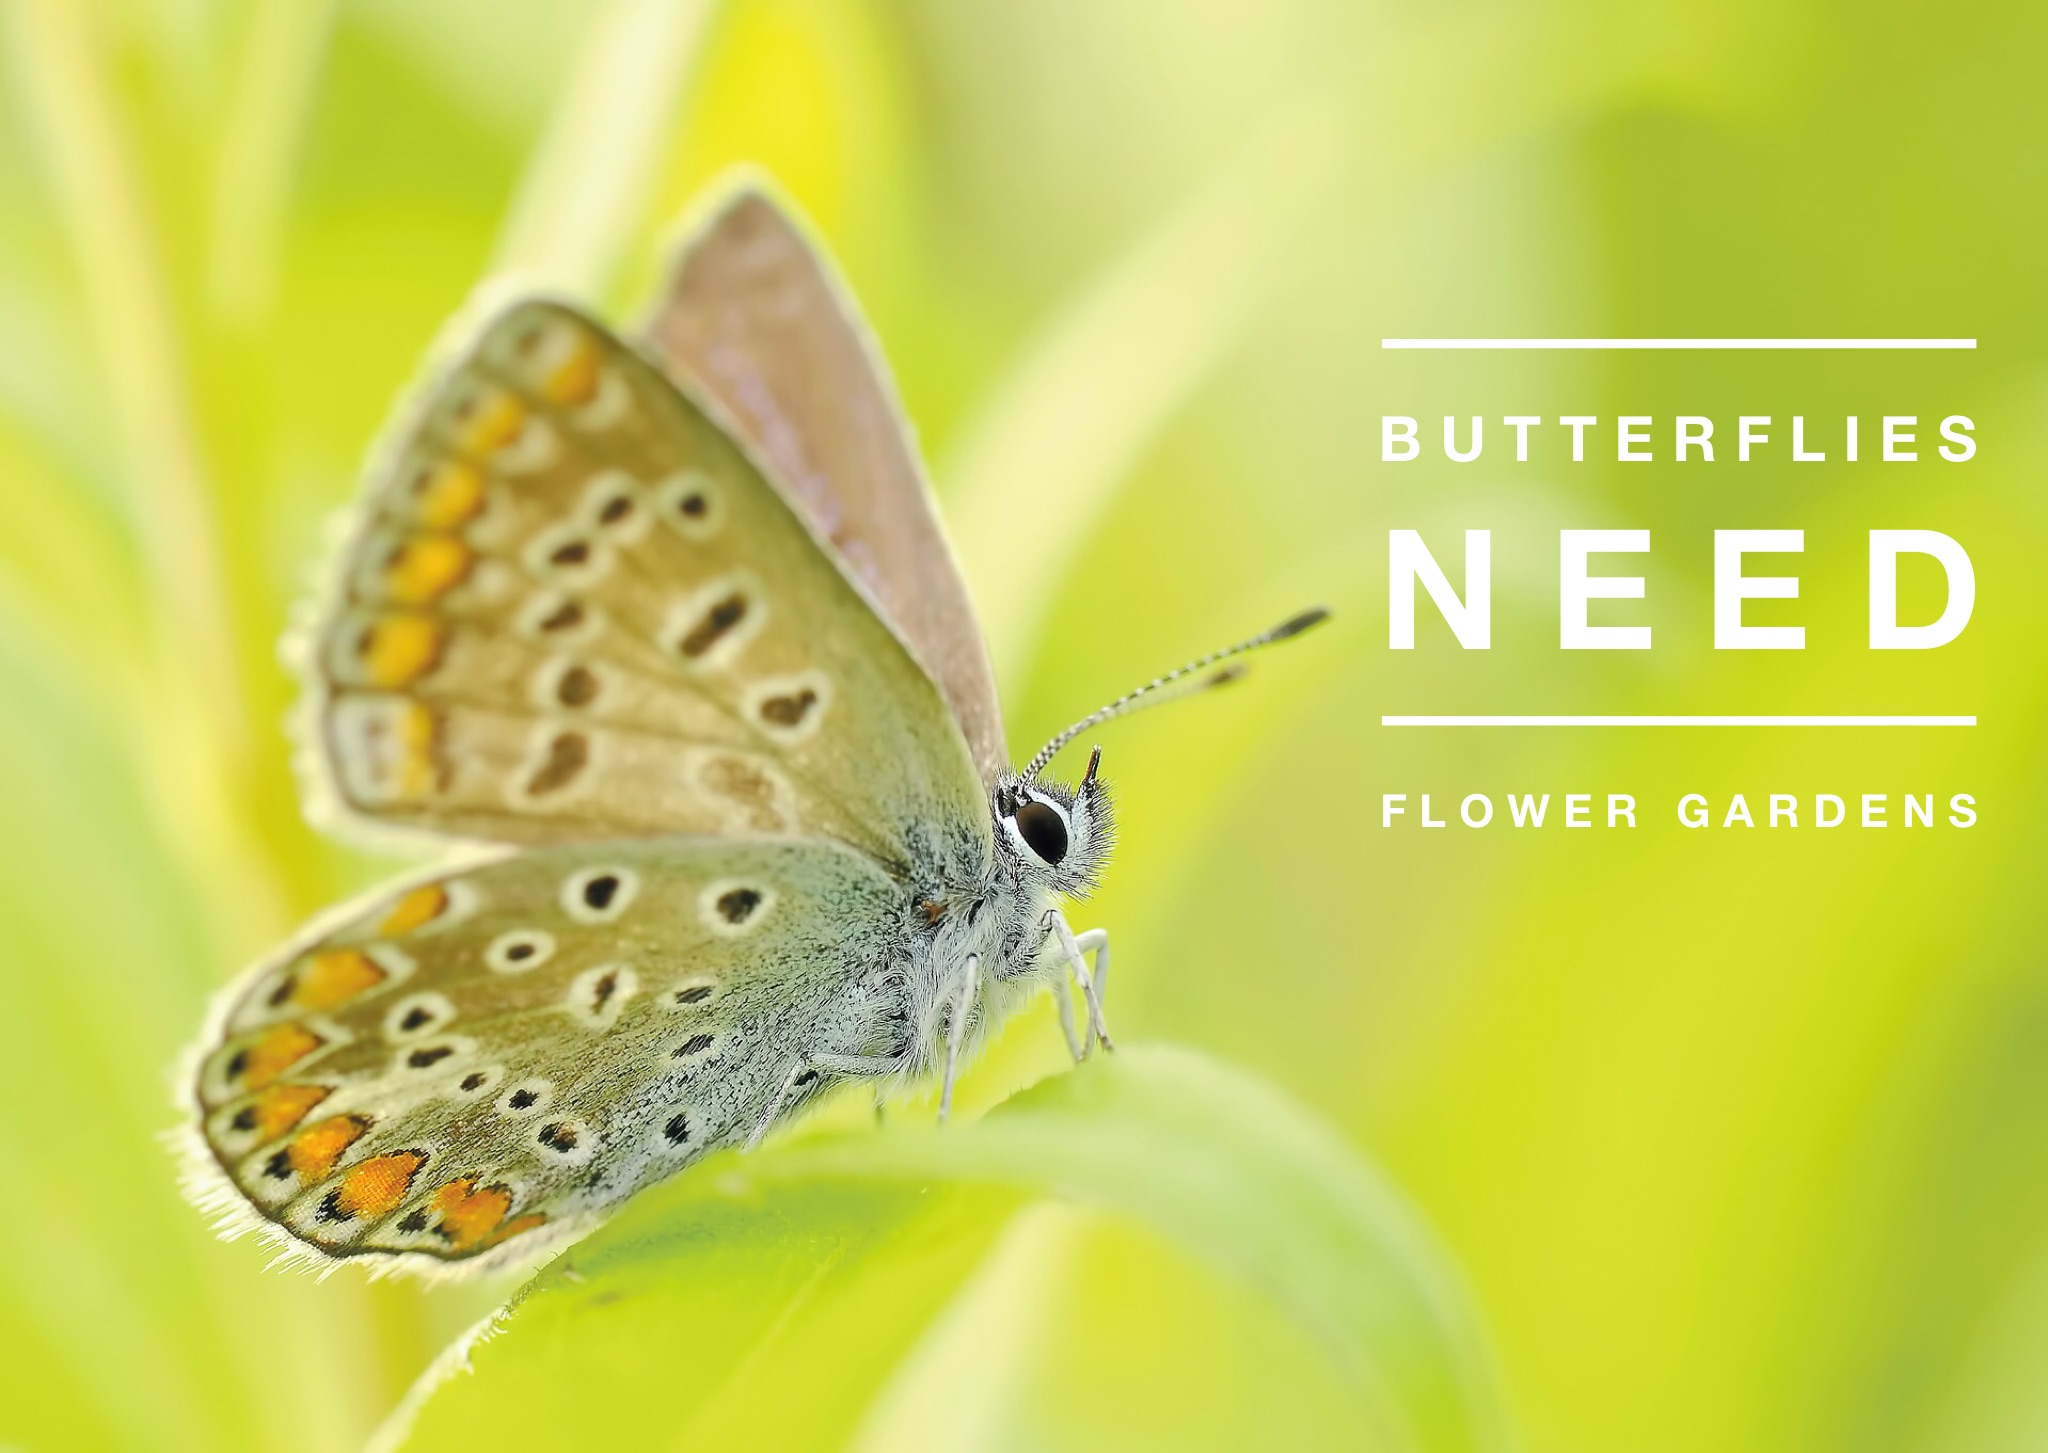 Fill your house with blooms and butterflies with nectar: Check out The Cutting Garden for more tips